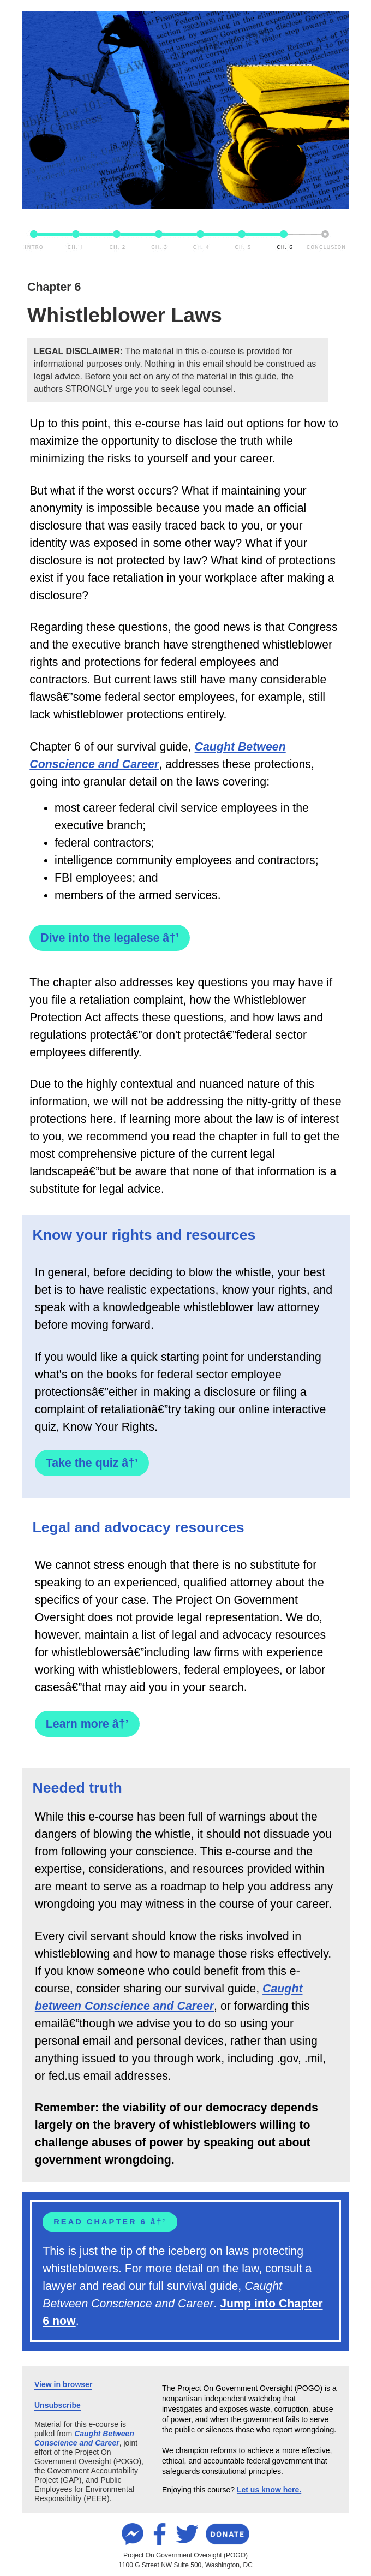 Chapter 6: Know your rights and resources